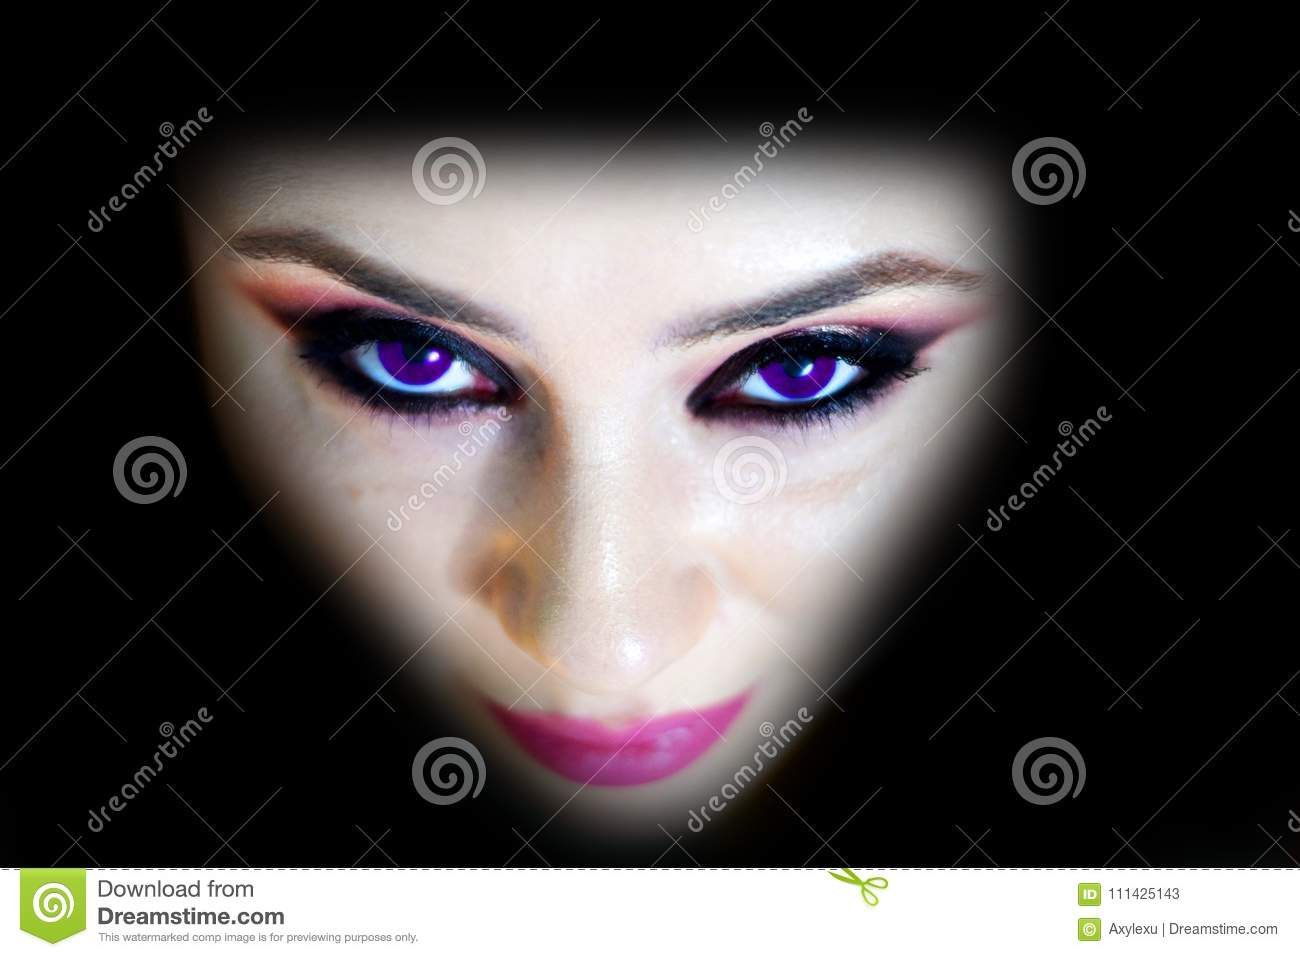 Fashion model face Simple and cold with the ultra violet eyes